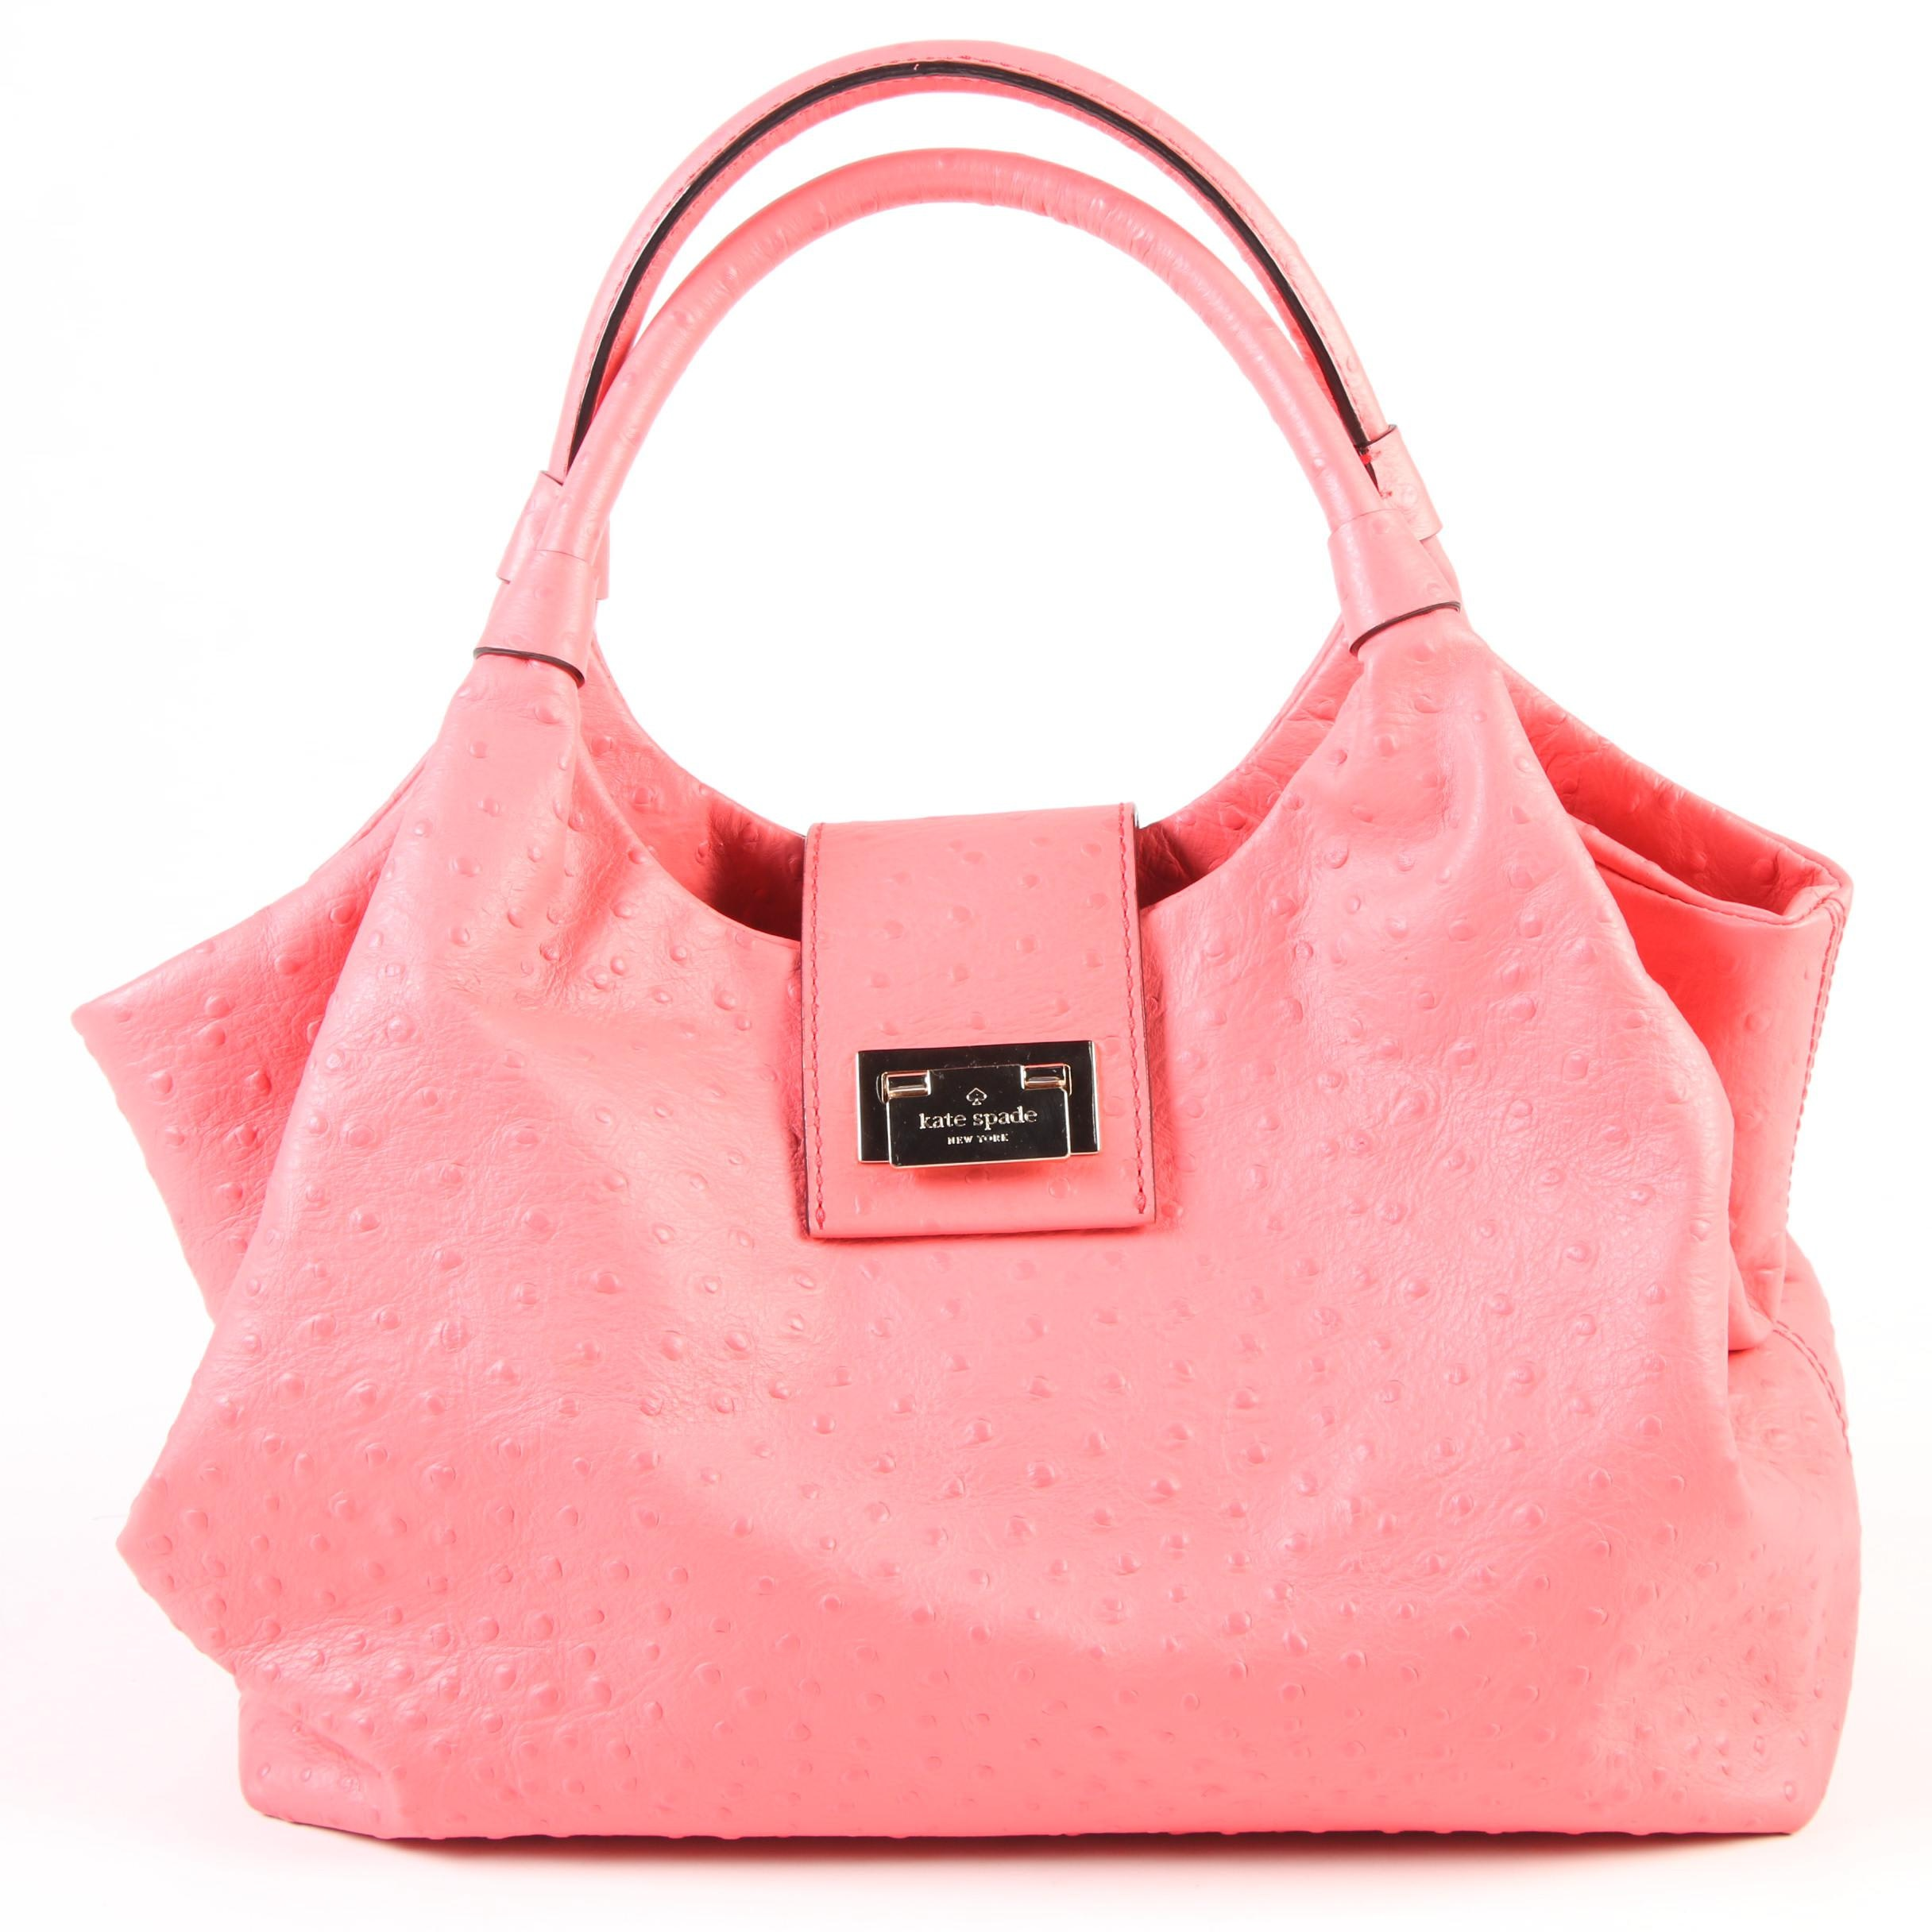 Kate Spade New York Strawberry Daiquiri Ostrich Embossed Leather Satchel